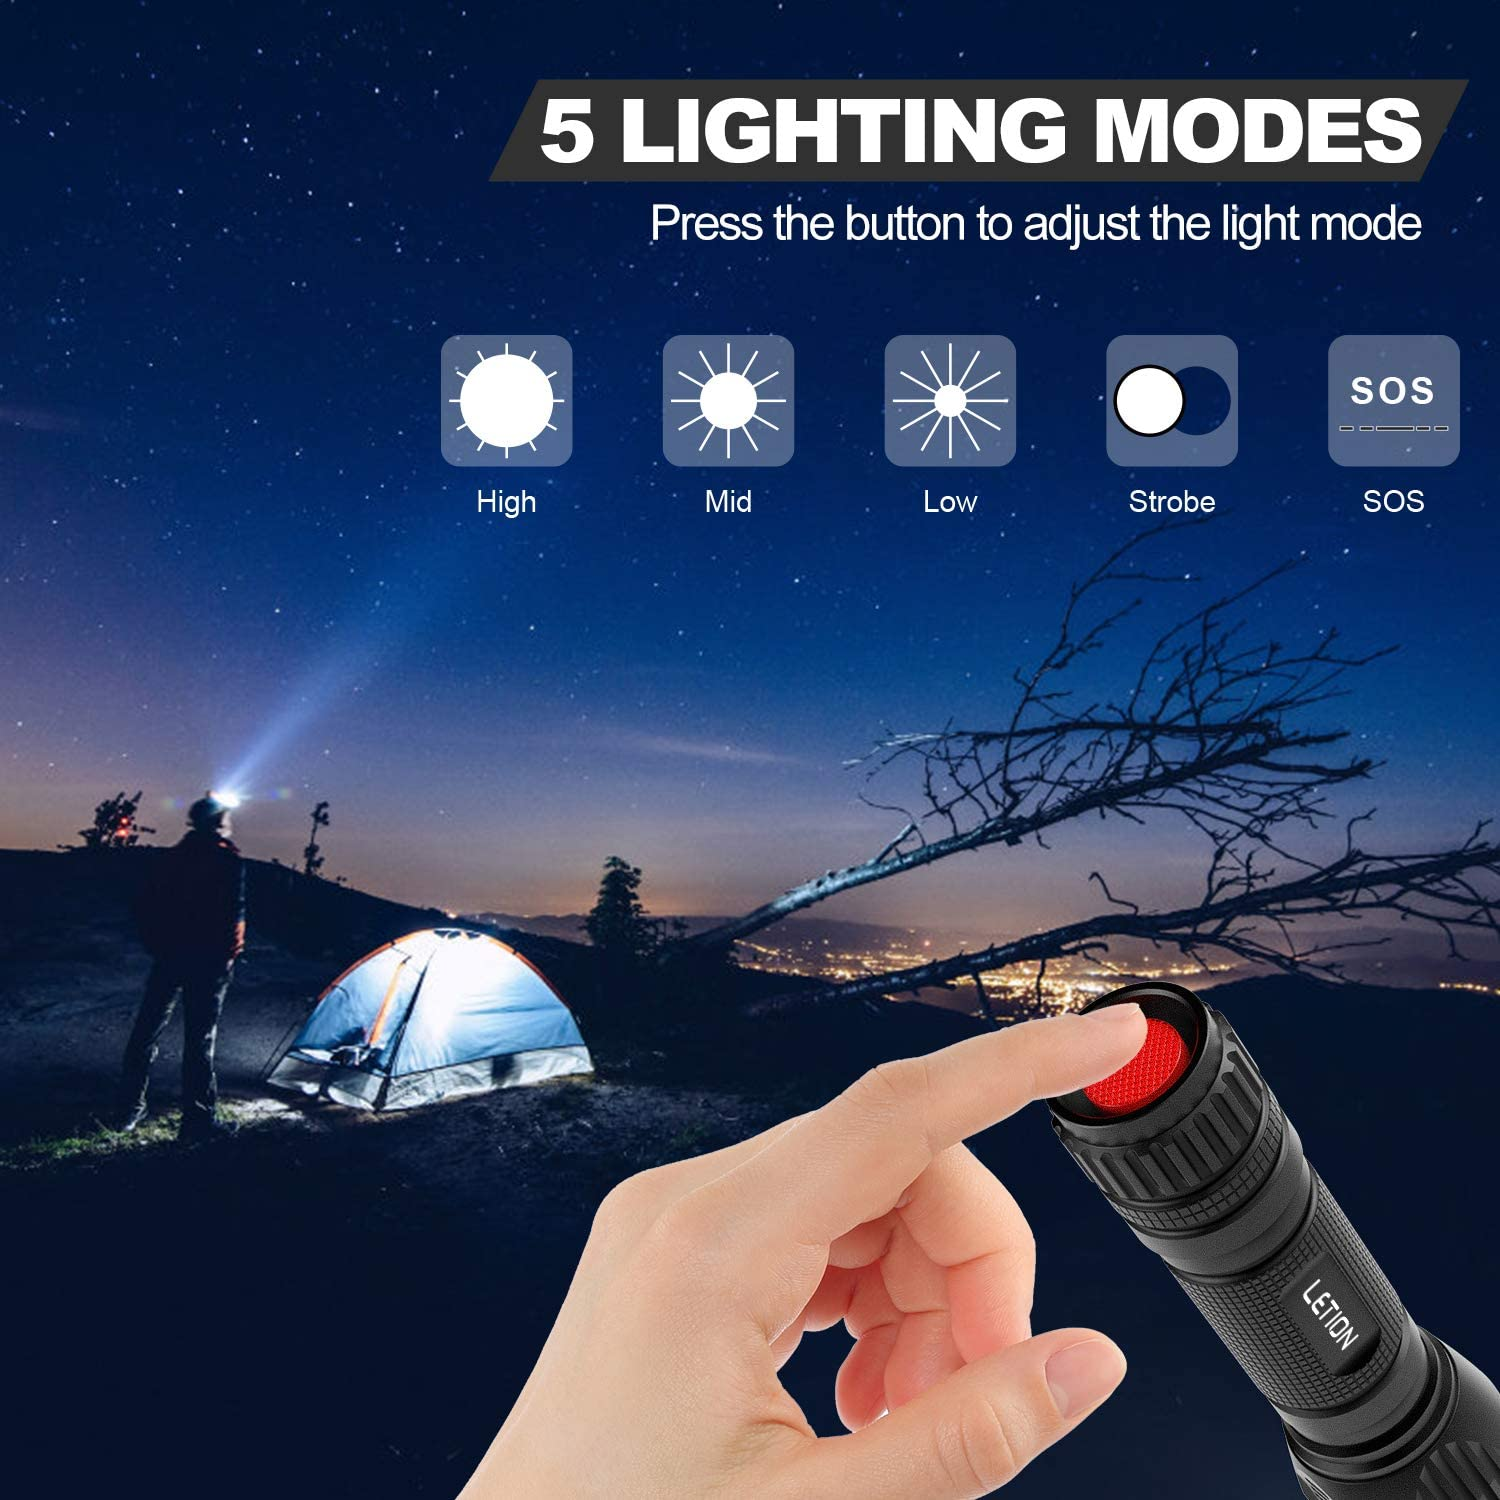 LETION LED Taschenlampe Taktische Taschenlampe Wiederaufladbare Taschenlampe 1200 Lumen 2200 mAh Mini-Taschenlampe mit 5 Modi Wasserdicht f/ür Camping Outdoor Dog Walking Night Running